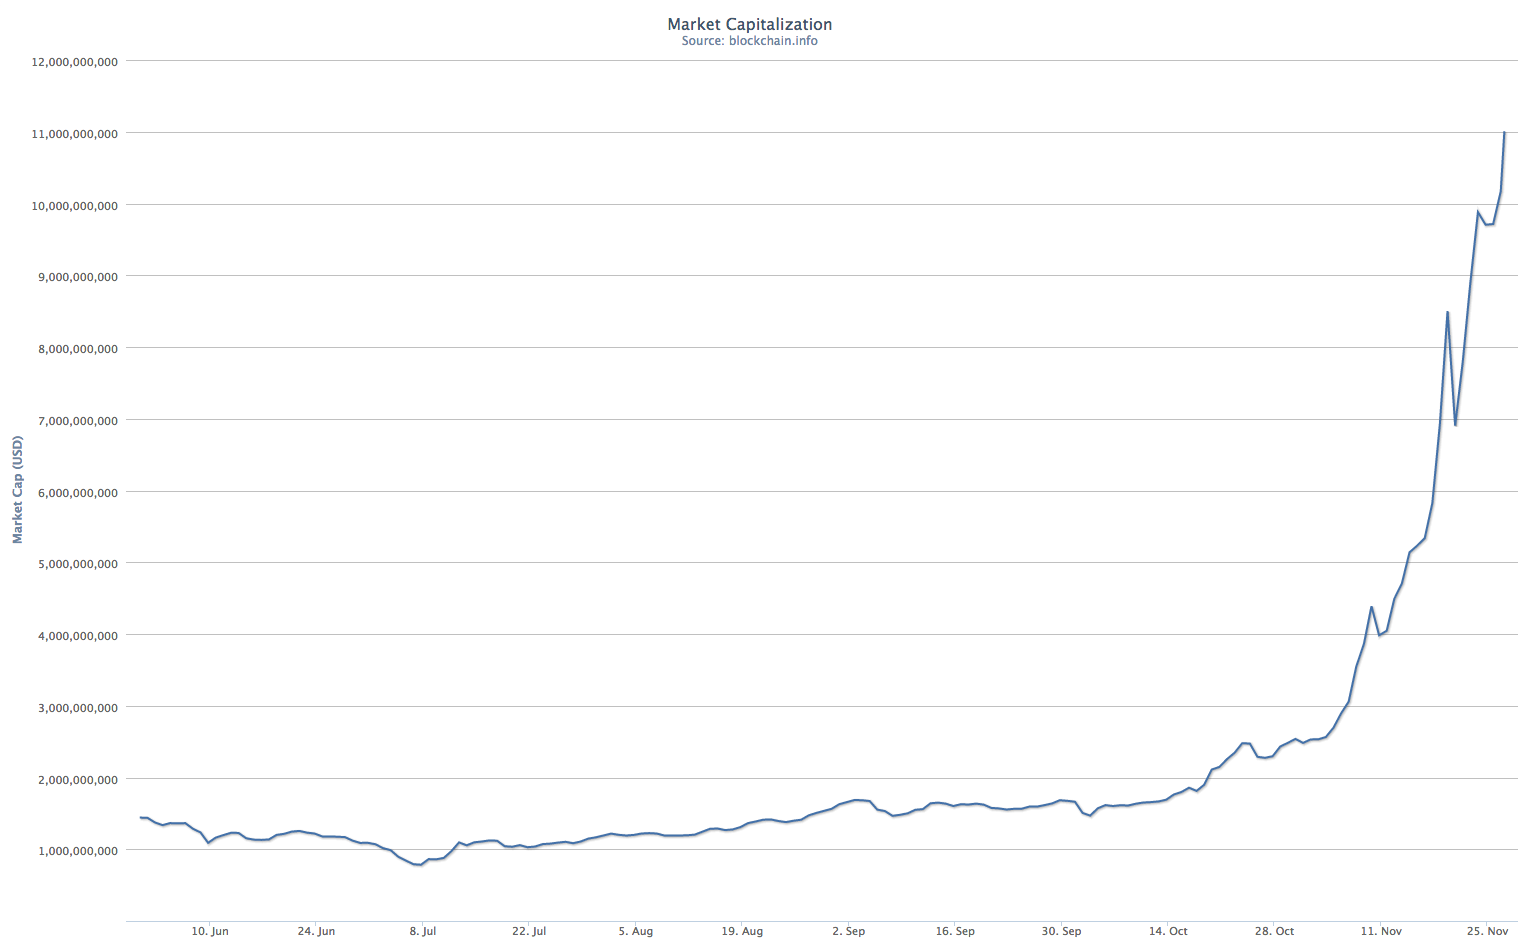 Bitcoin Market Cap From Blockchain Charts